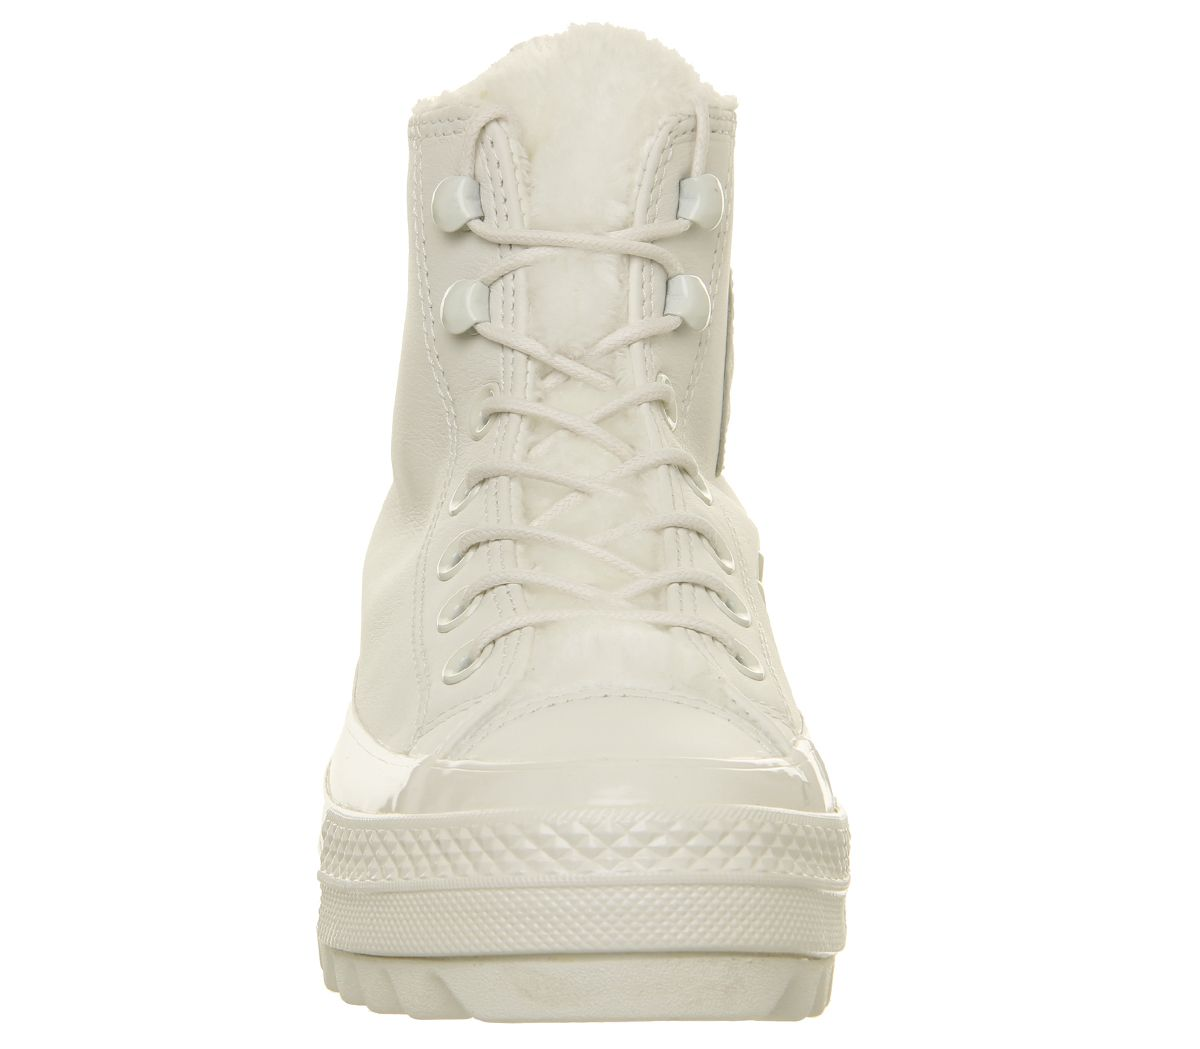 280c07316224 Converse Chuck Taylor All Star Lift Ripple Hi Trainers Vintage White ...